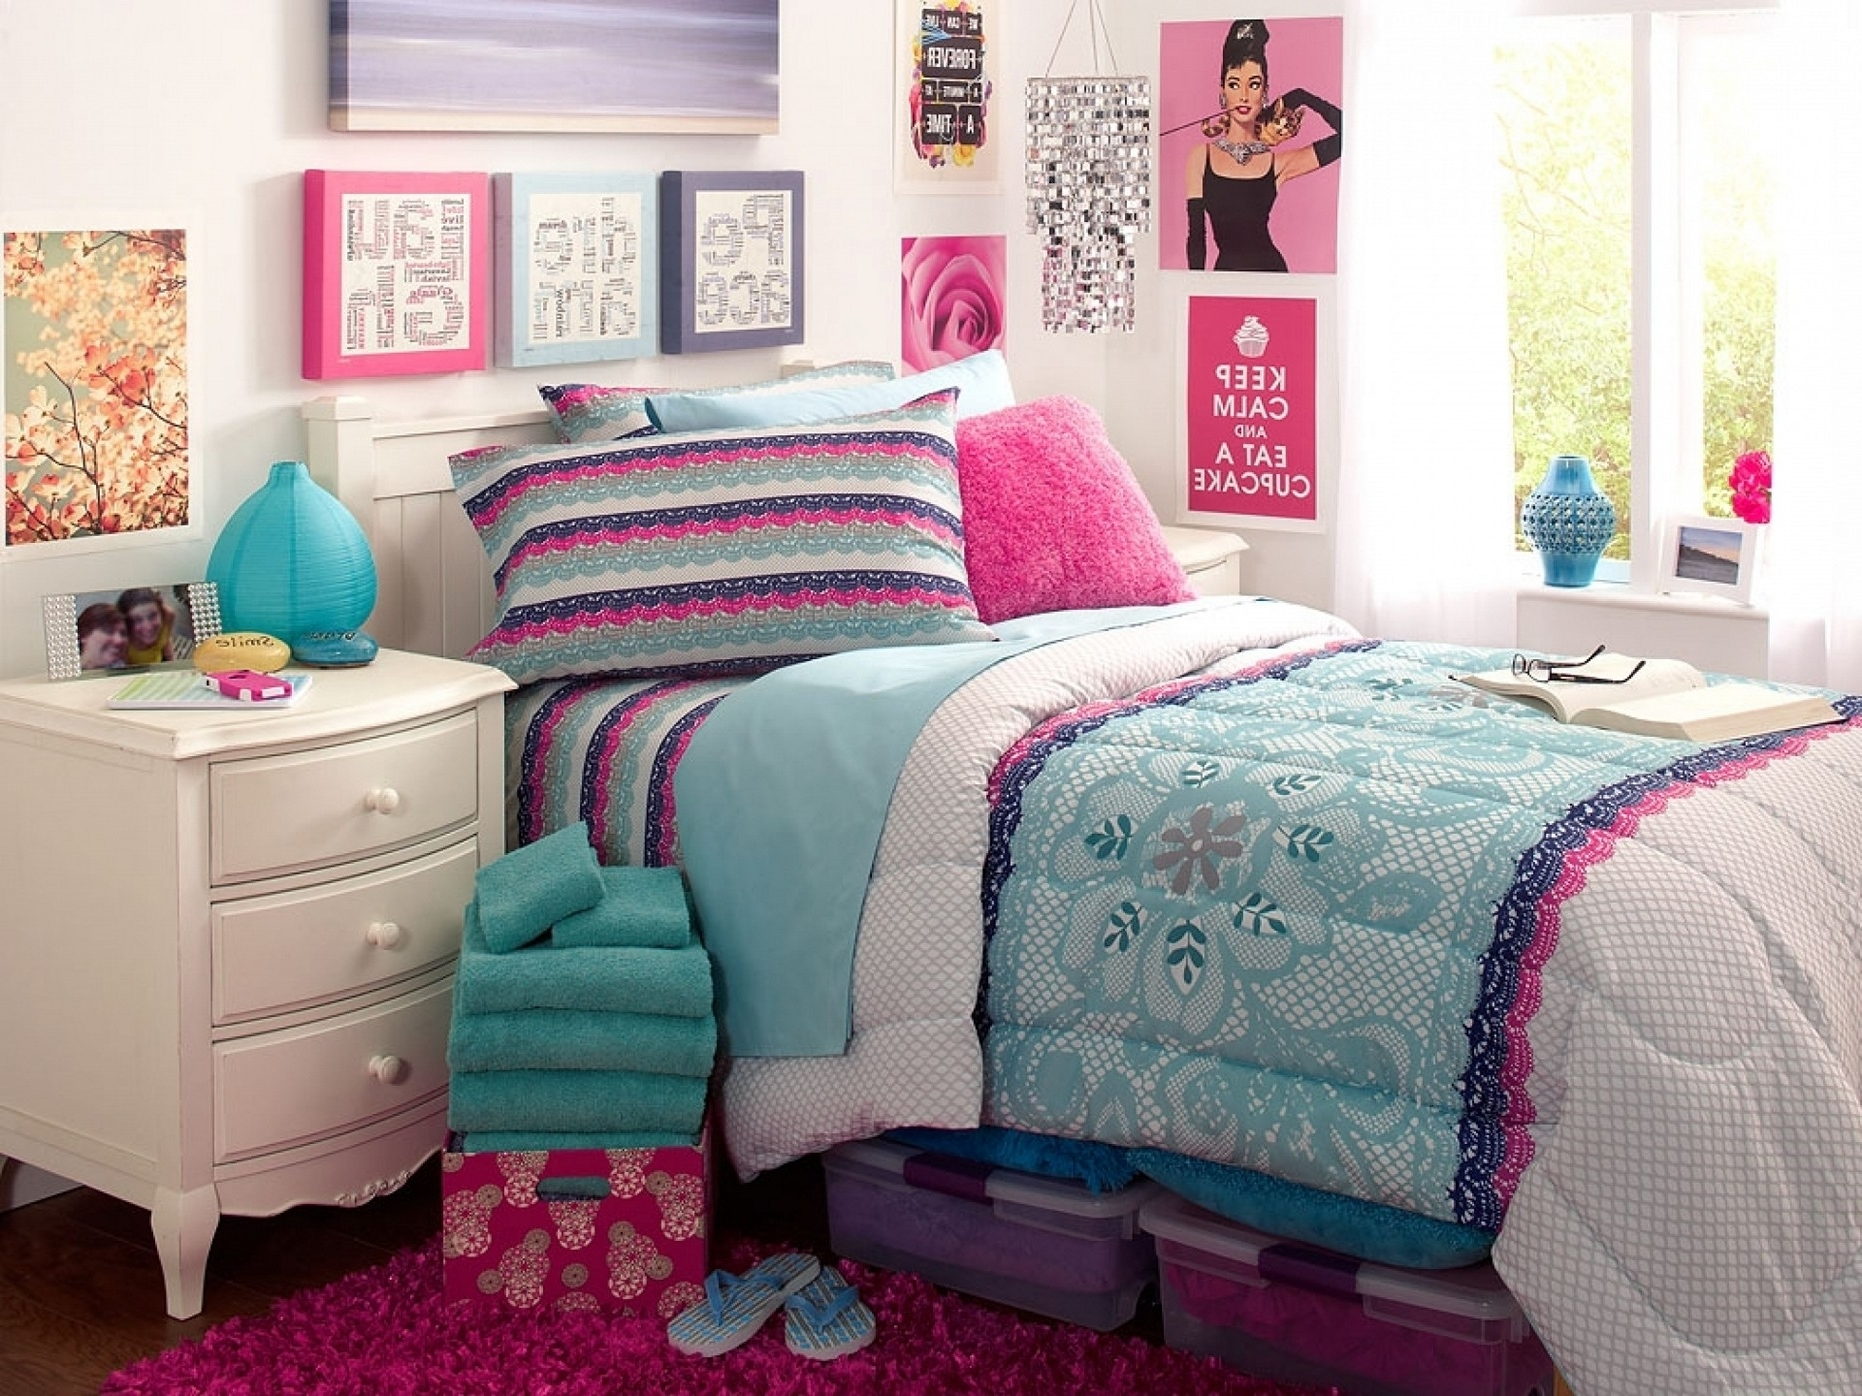 Teenage Wall Art In Well Liked Bedrooms : Room Decor Ideas For Teenage Girl Bedroom Design Ideas (View 12 of 15)